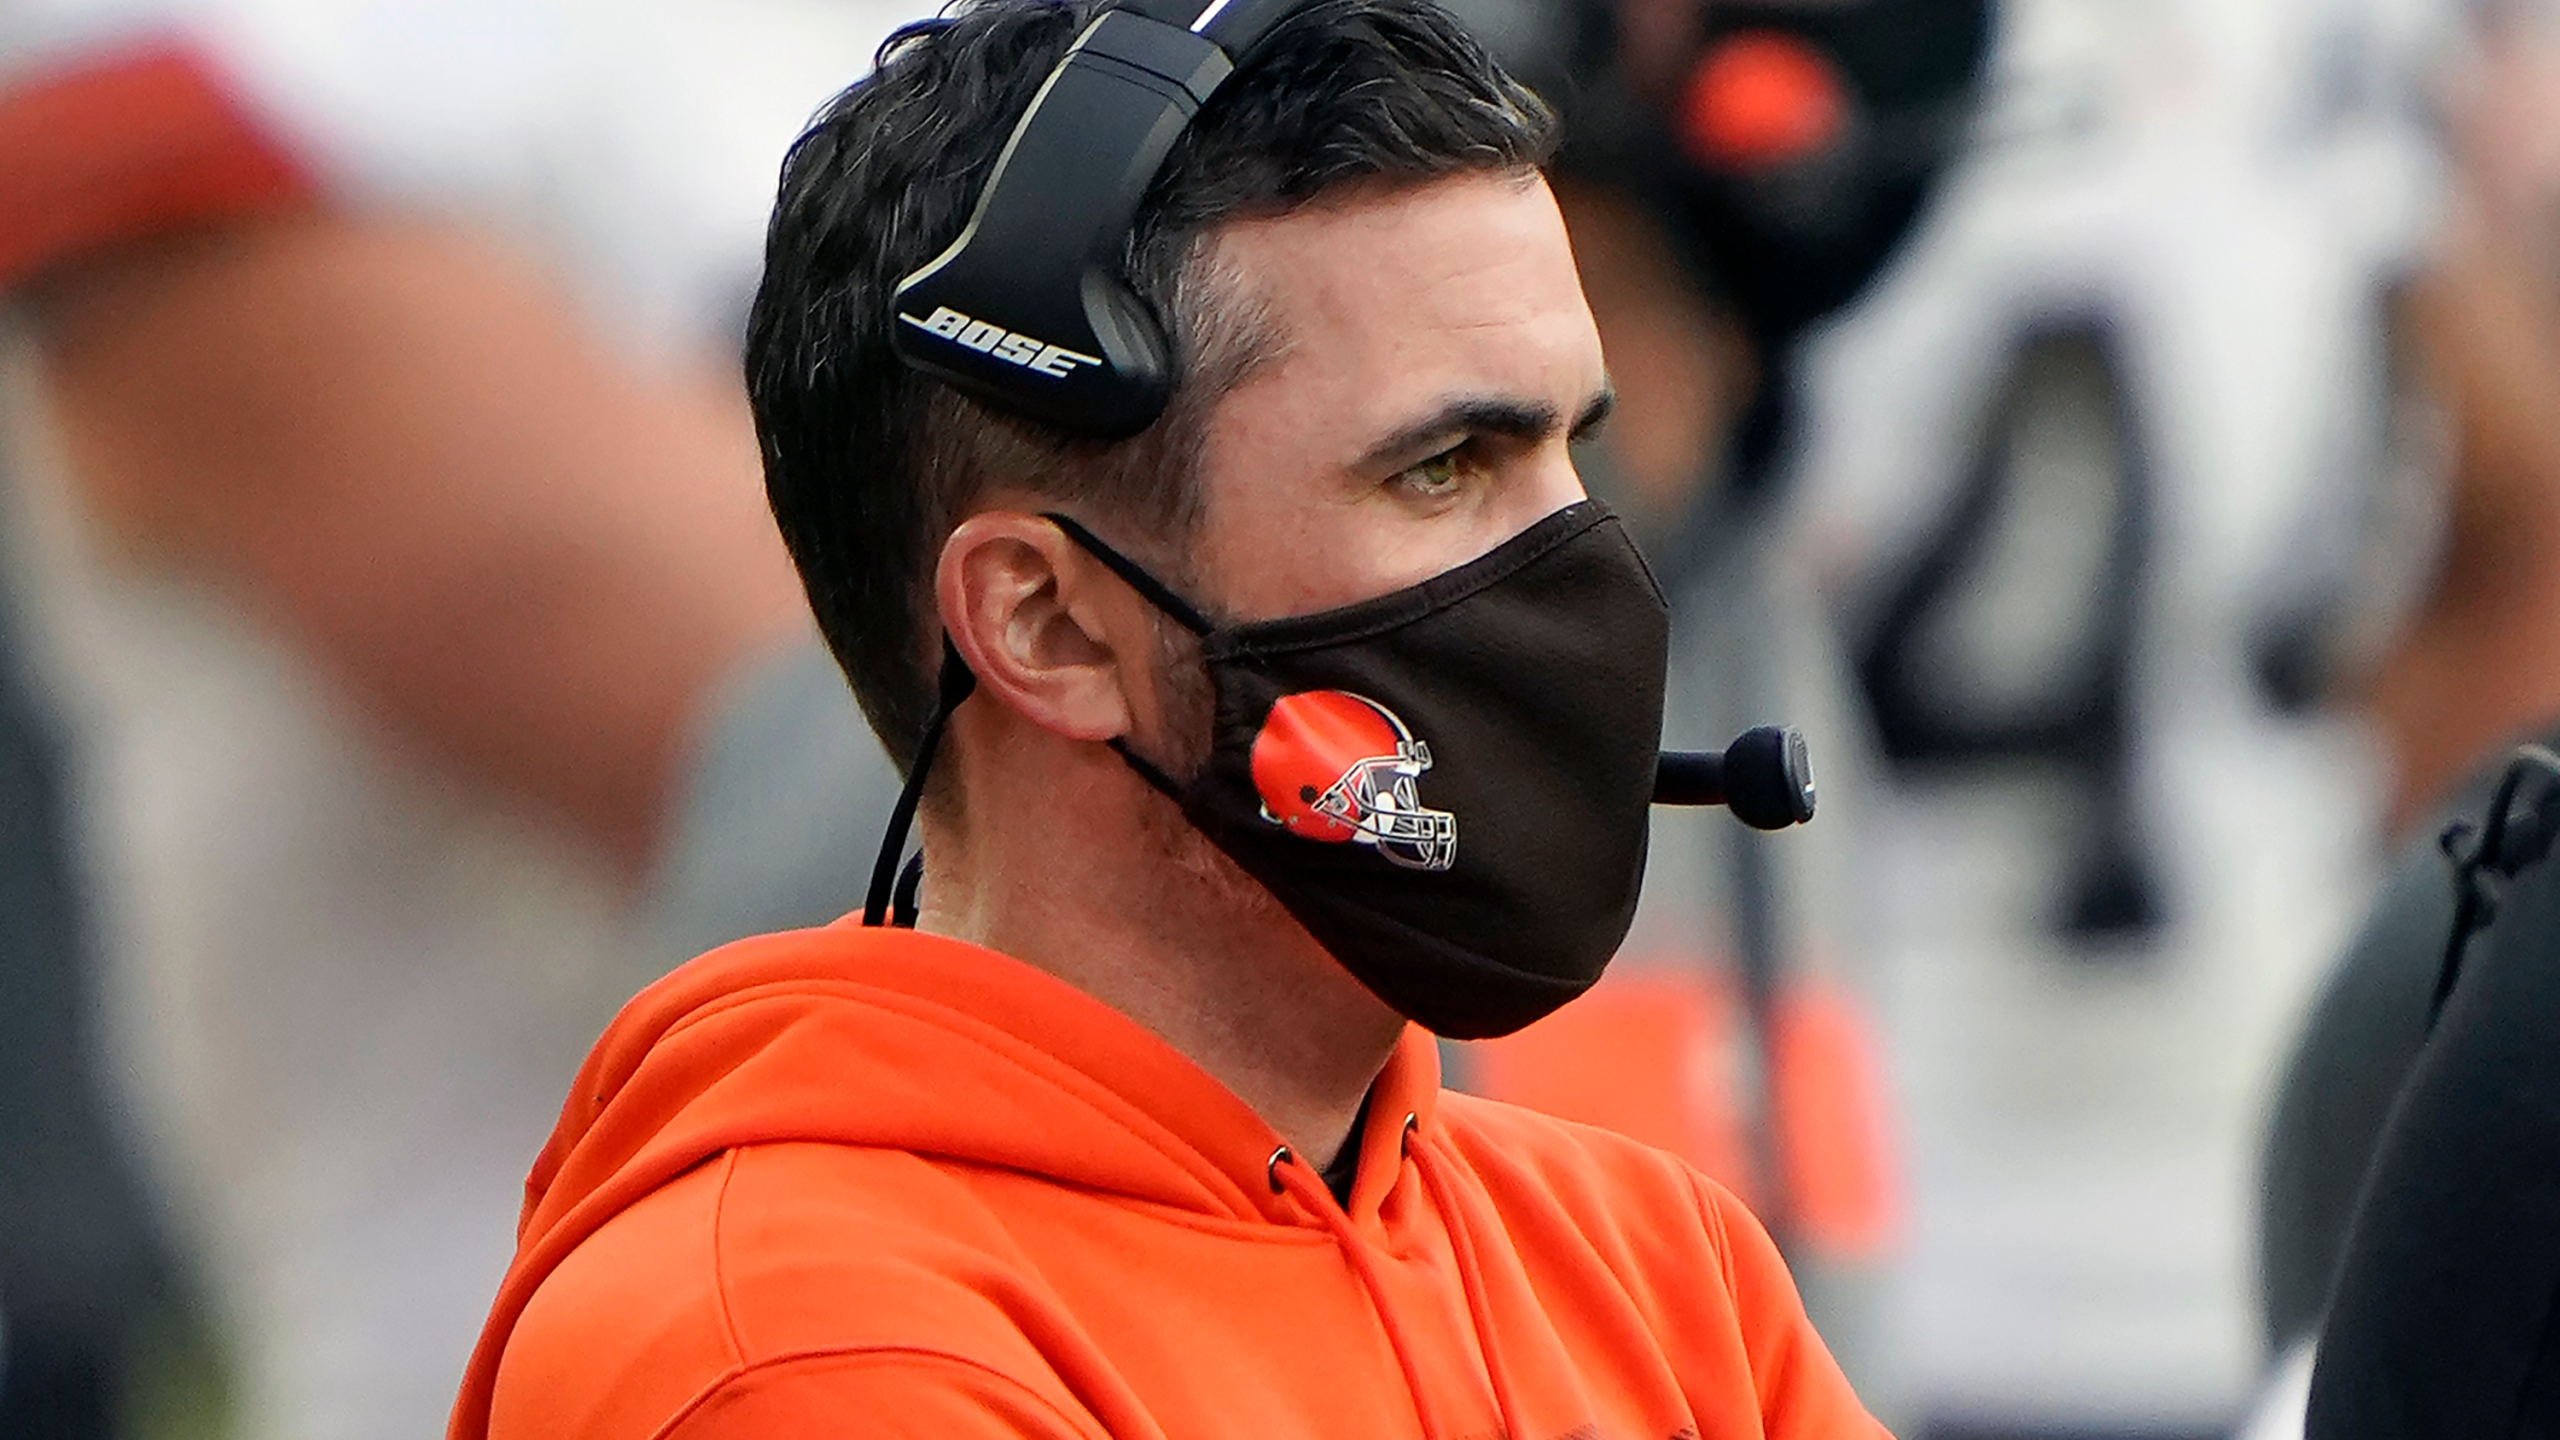 Stefanski out of basement, back with Browns after COVID-19 | WGN Radio 720  - Chicago's Very Own